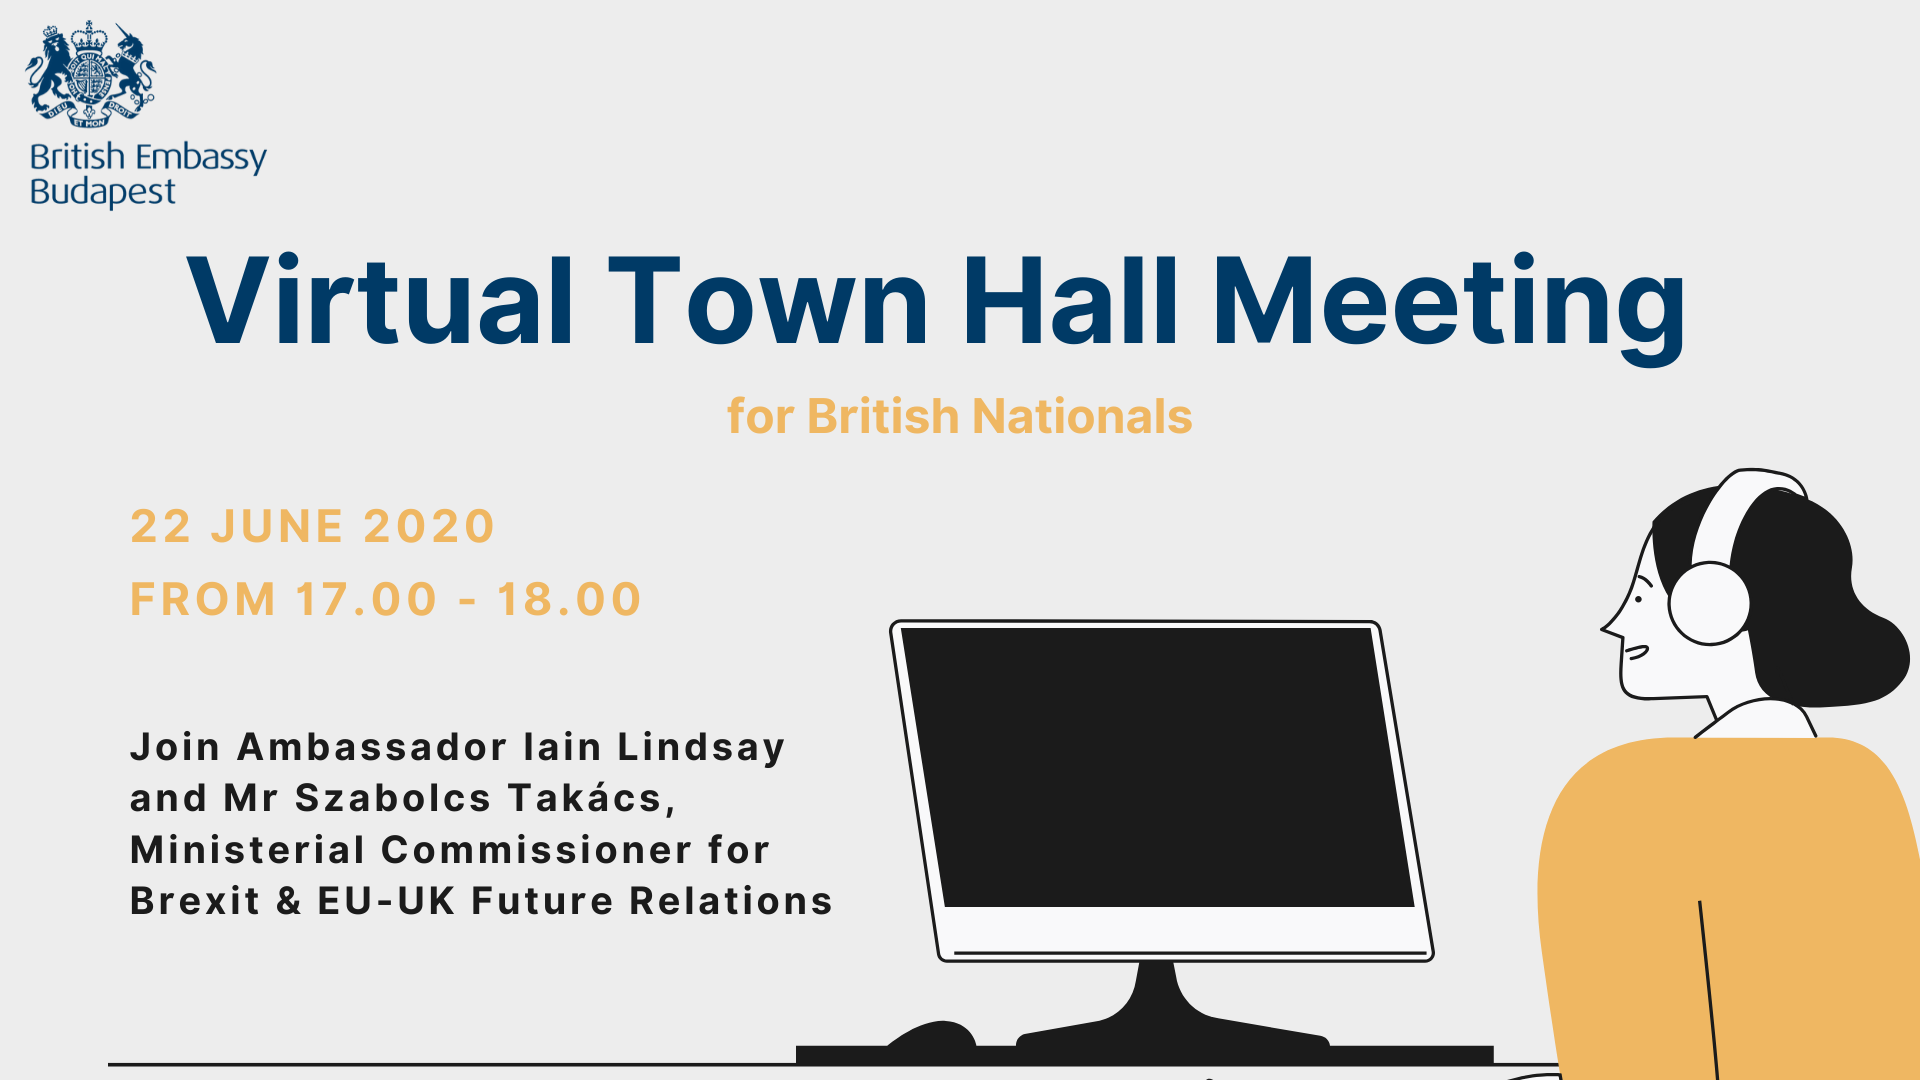 Virtual Town Hall Meeting For British Nationals